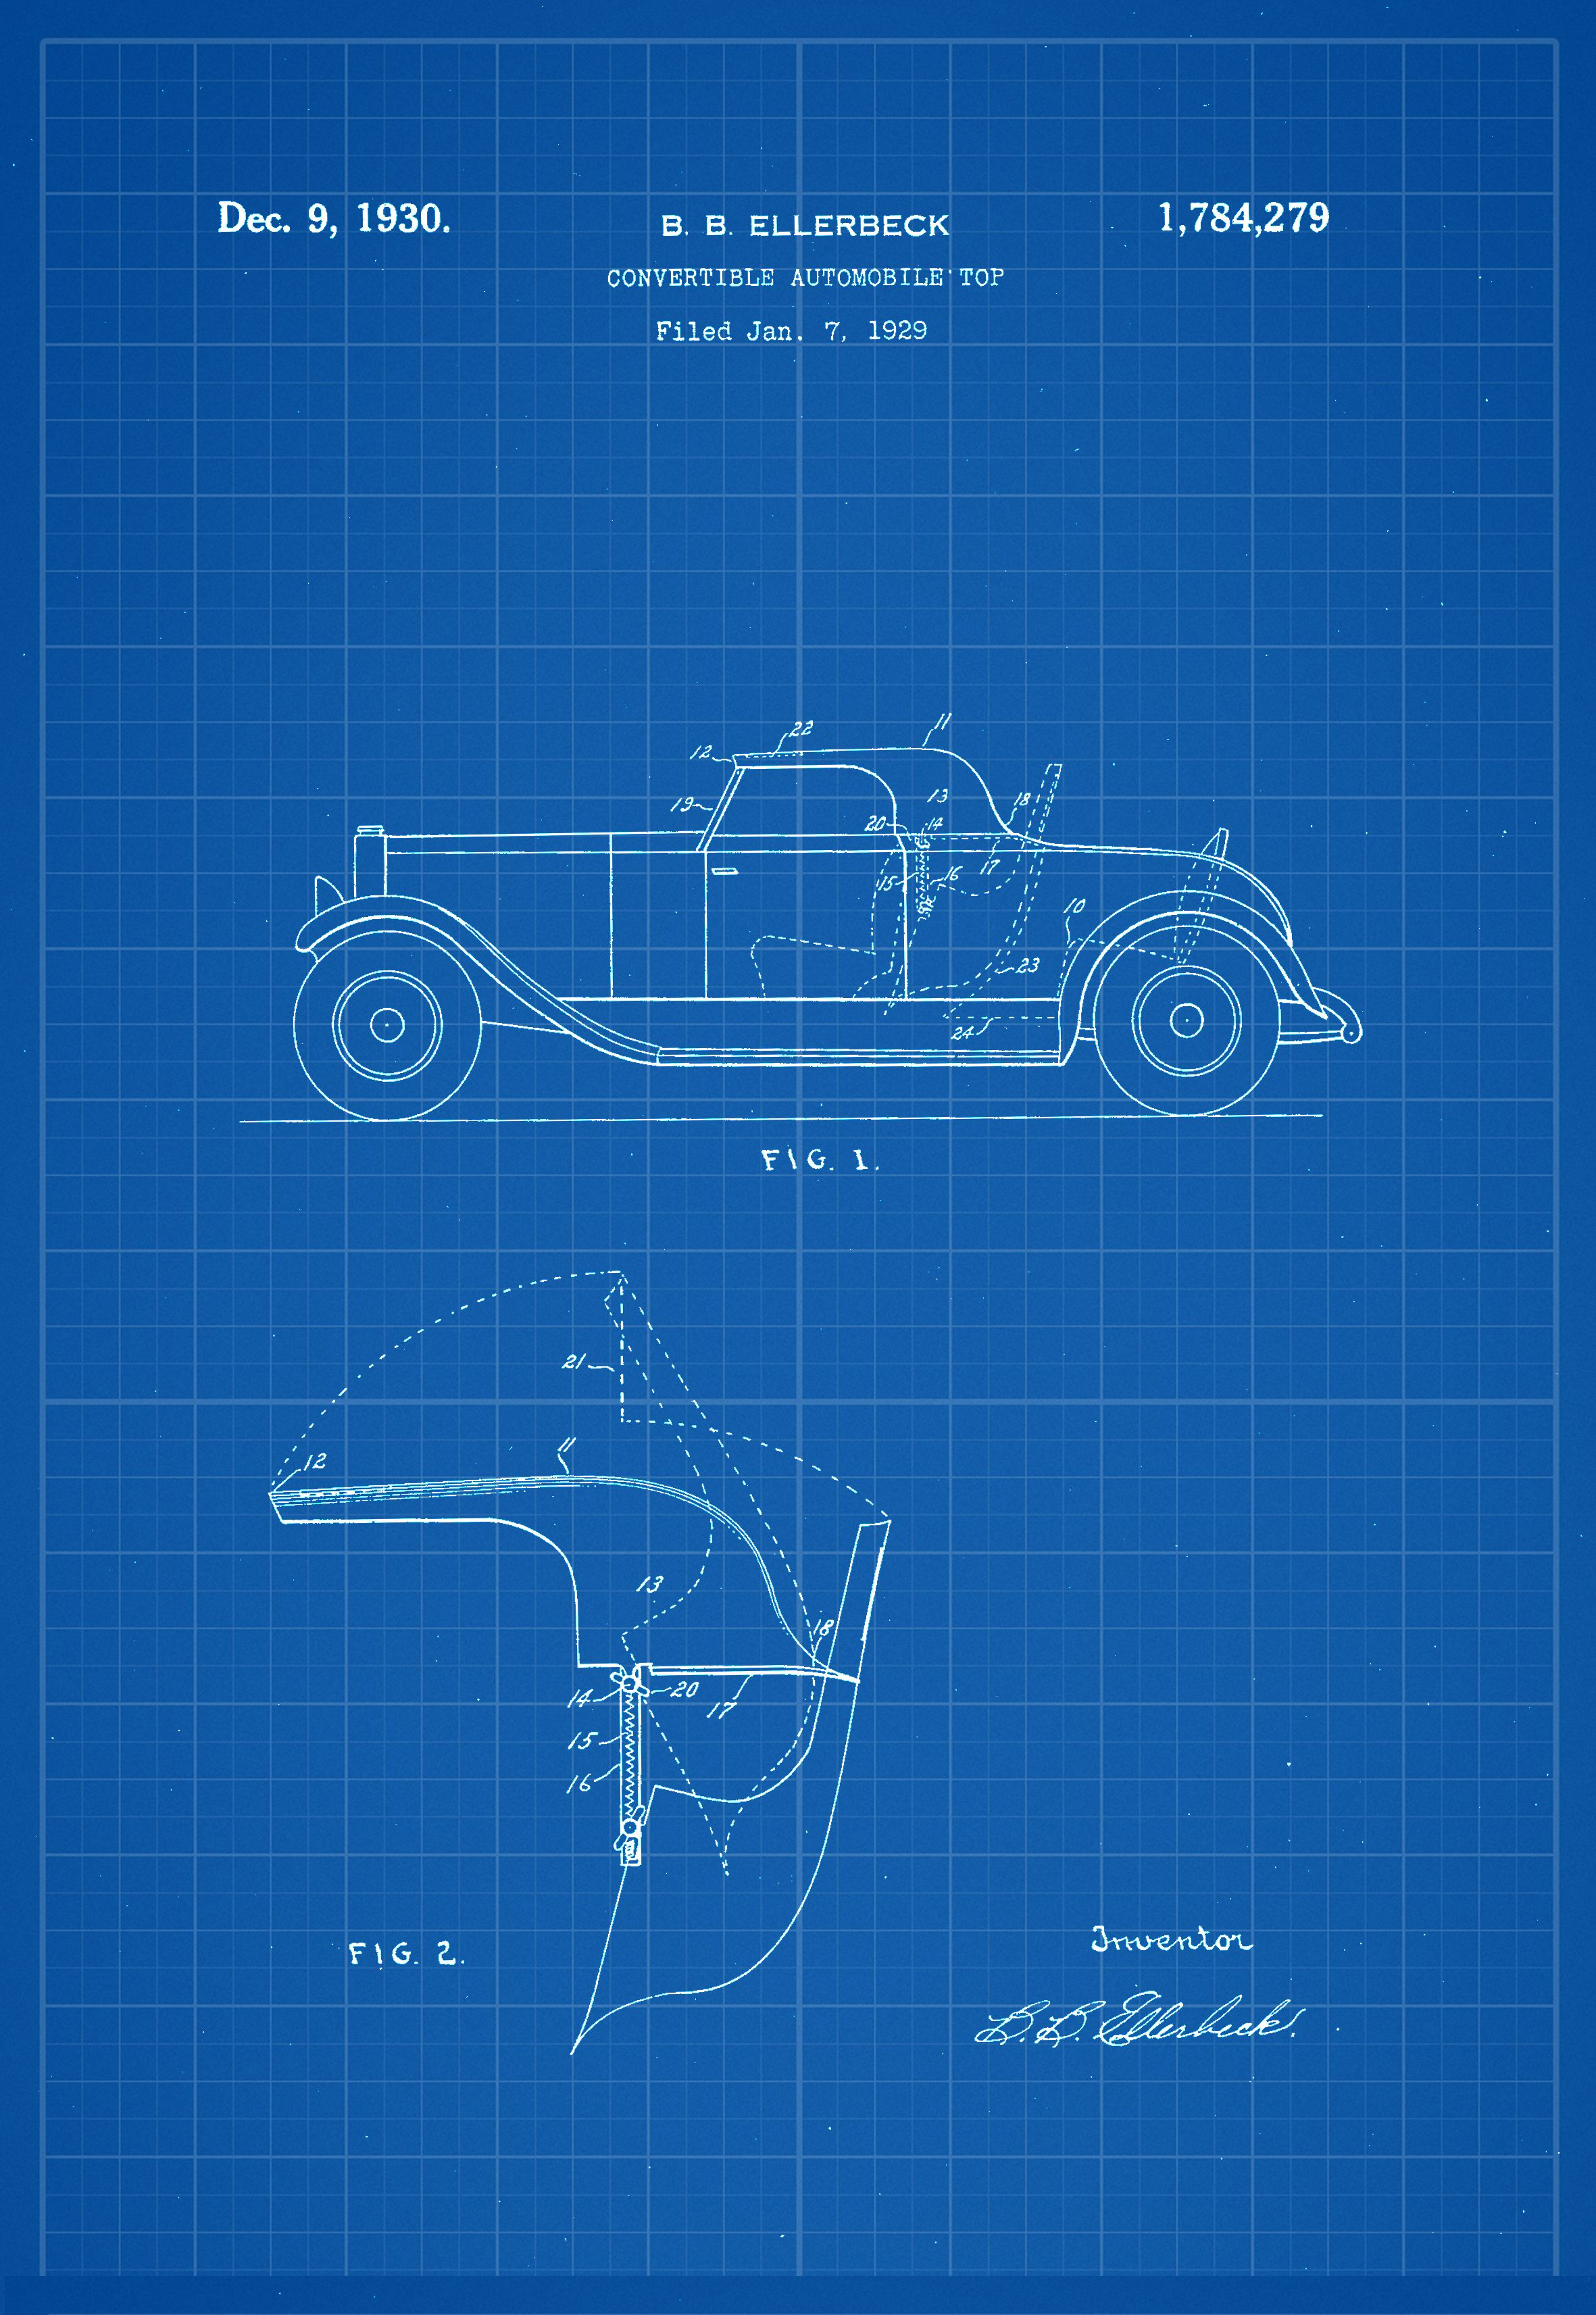 Car patent poster automobile print vintage art pinterest car patent poster automobile print vintage art car patent poster automobile print vintage art industrial design blueprint malvernweather Gallery